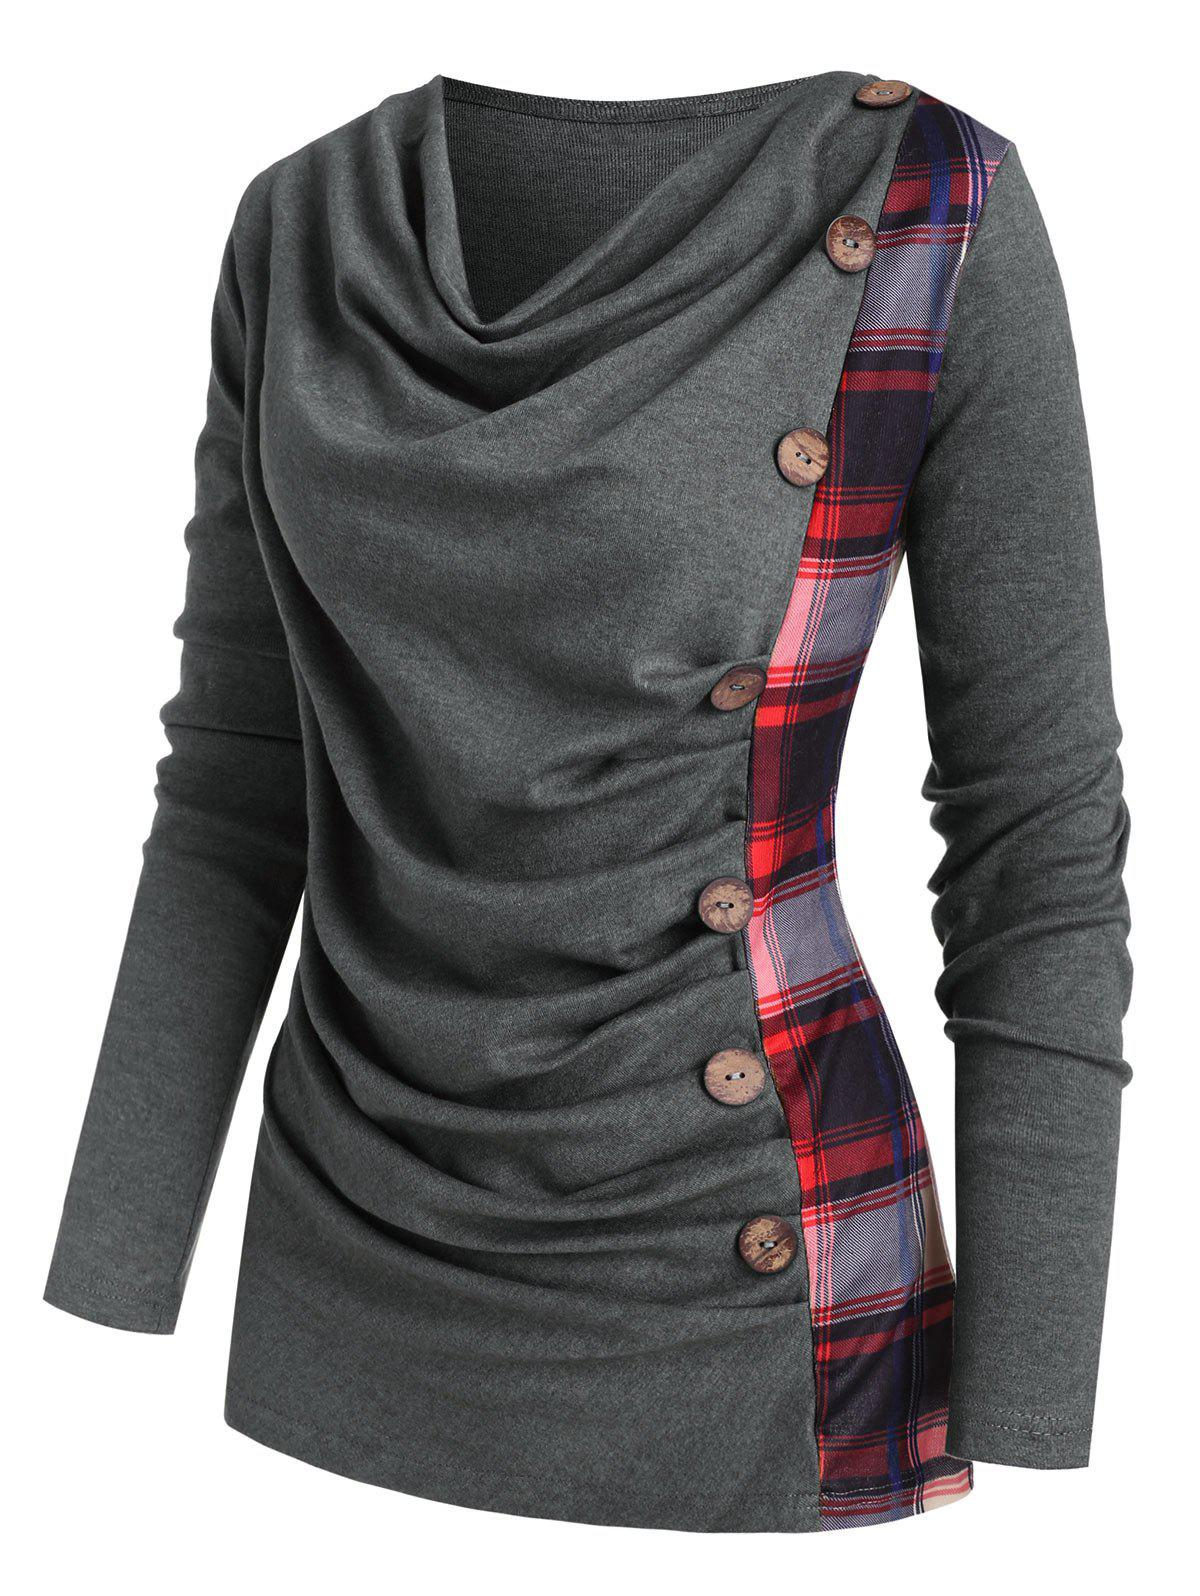 New Cowl Neck Plaid Panel Mock Button Knitwear